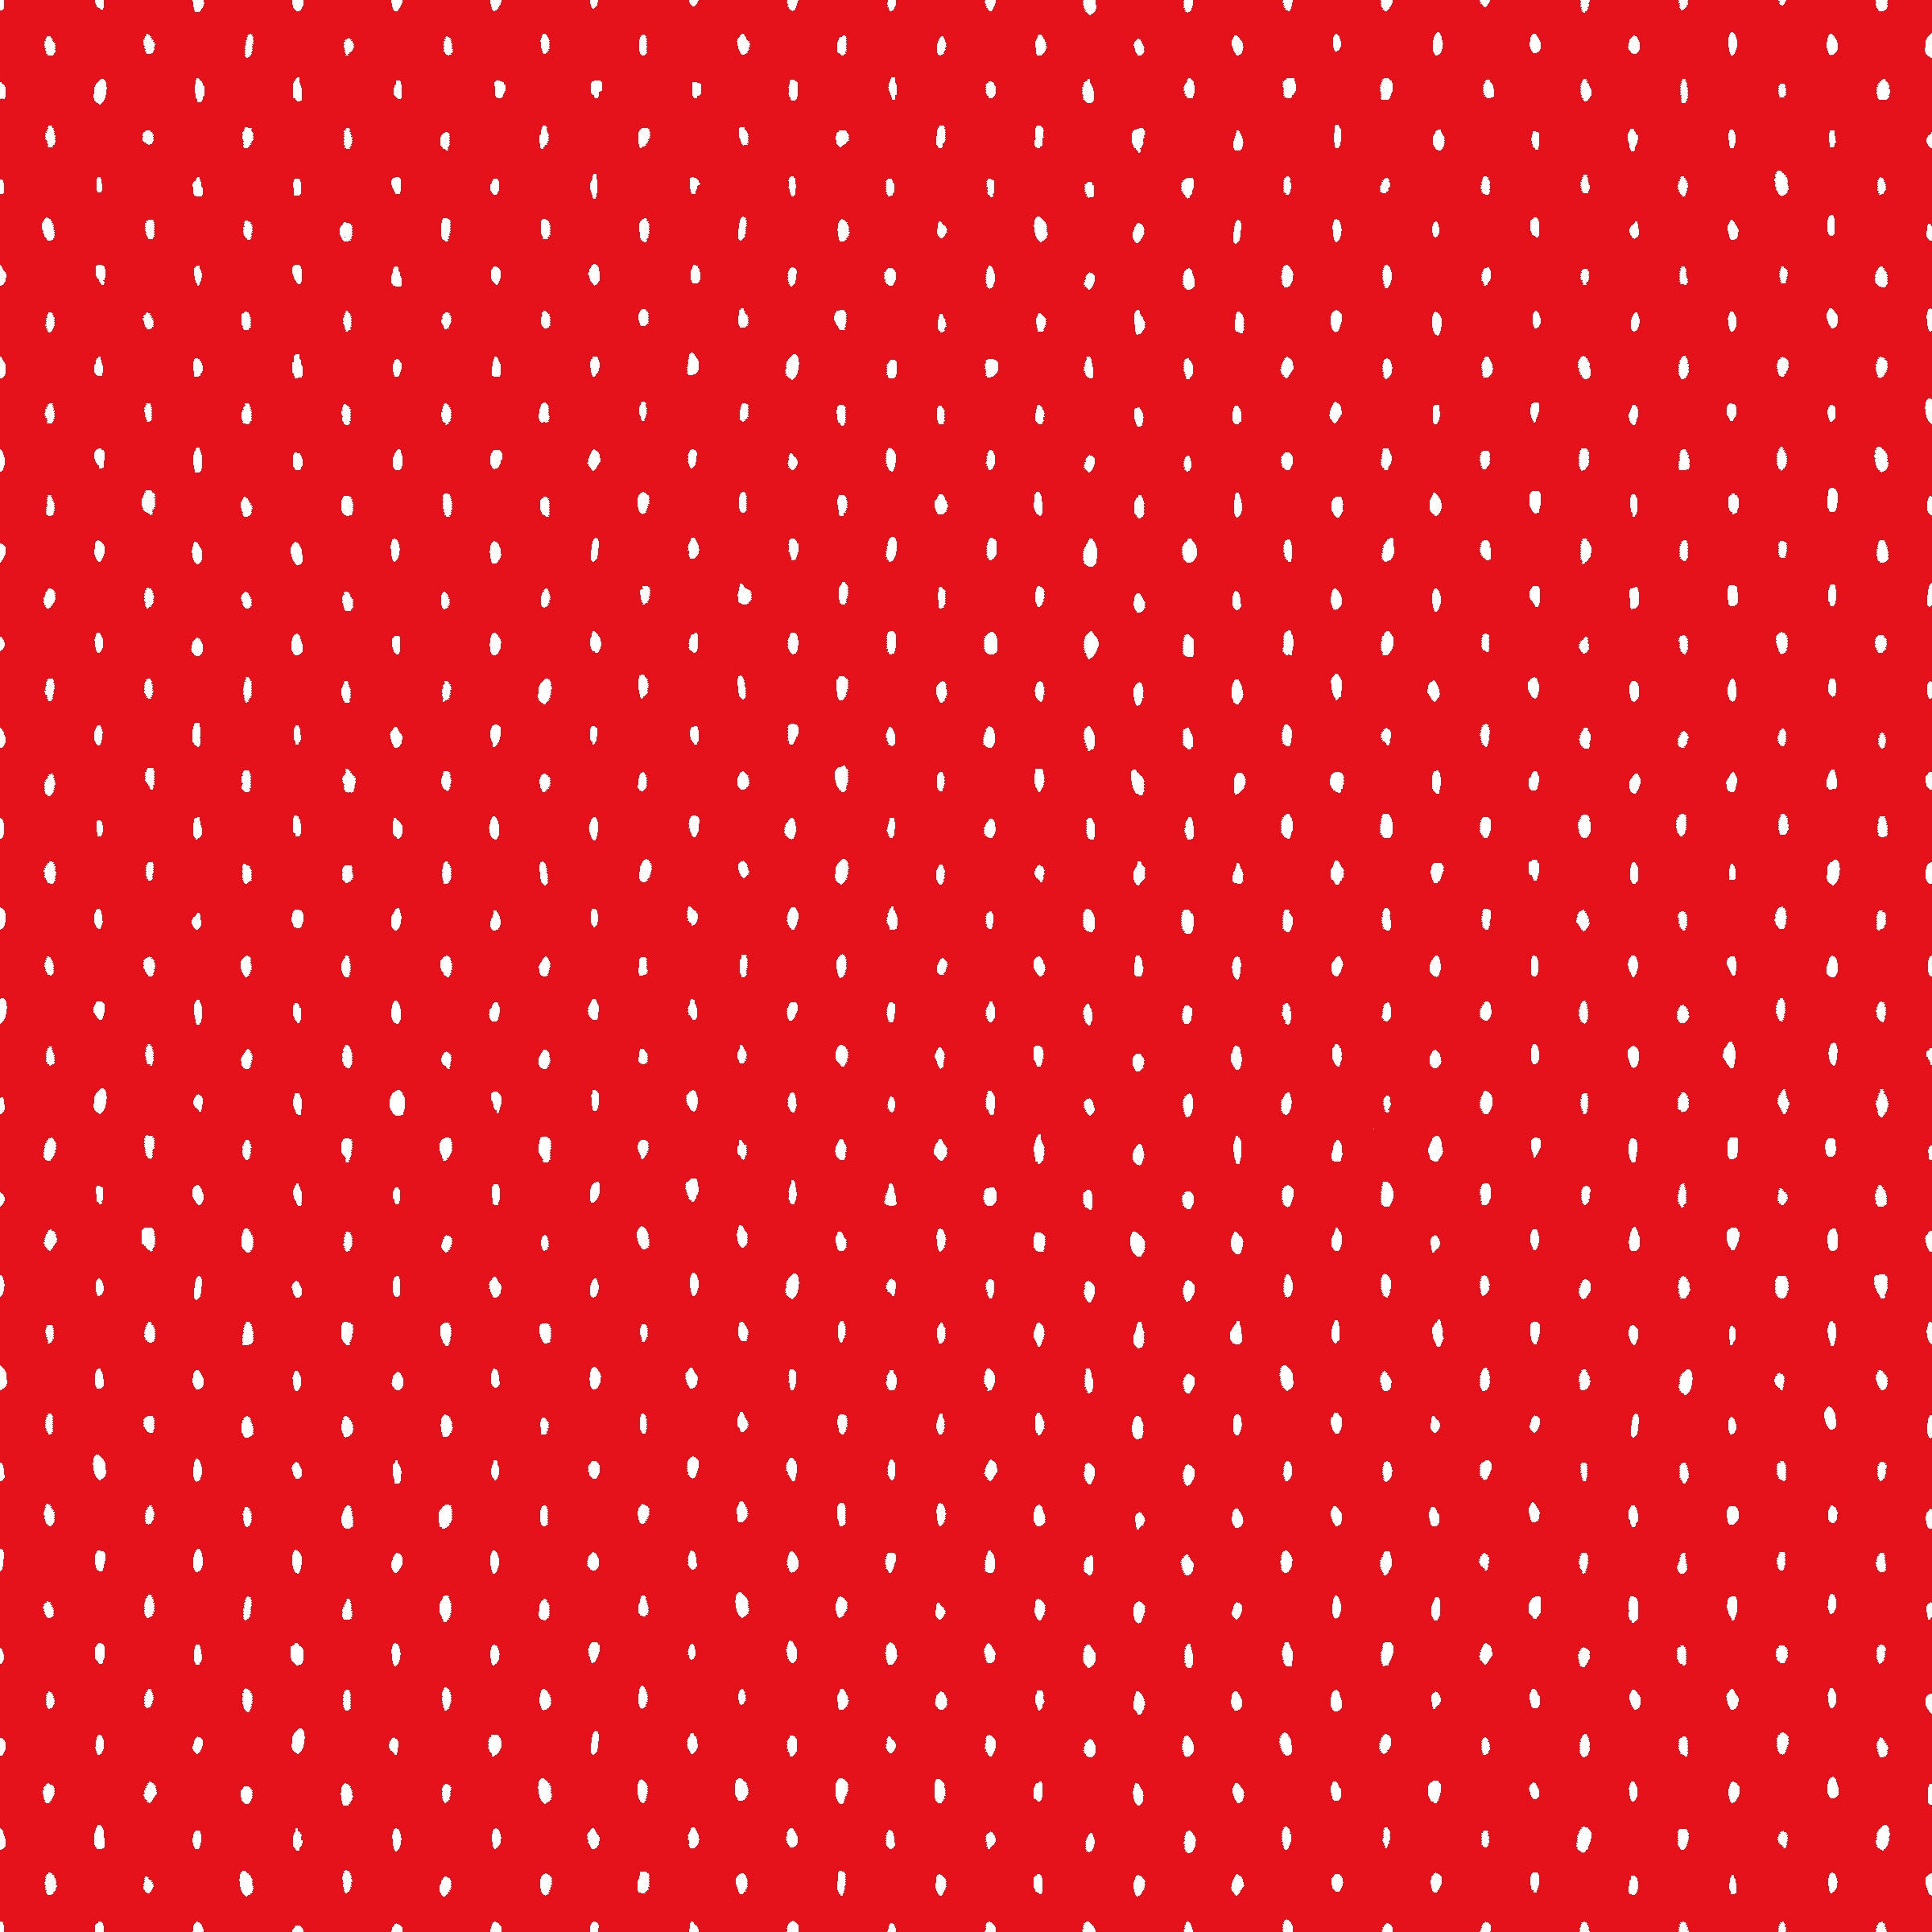 Stitch and Repeat - Strawberry $11.60/yd